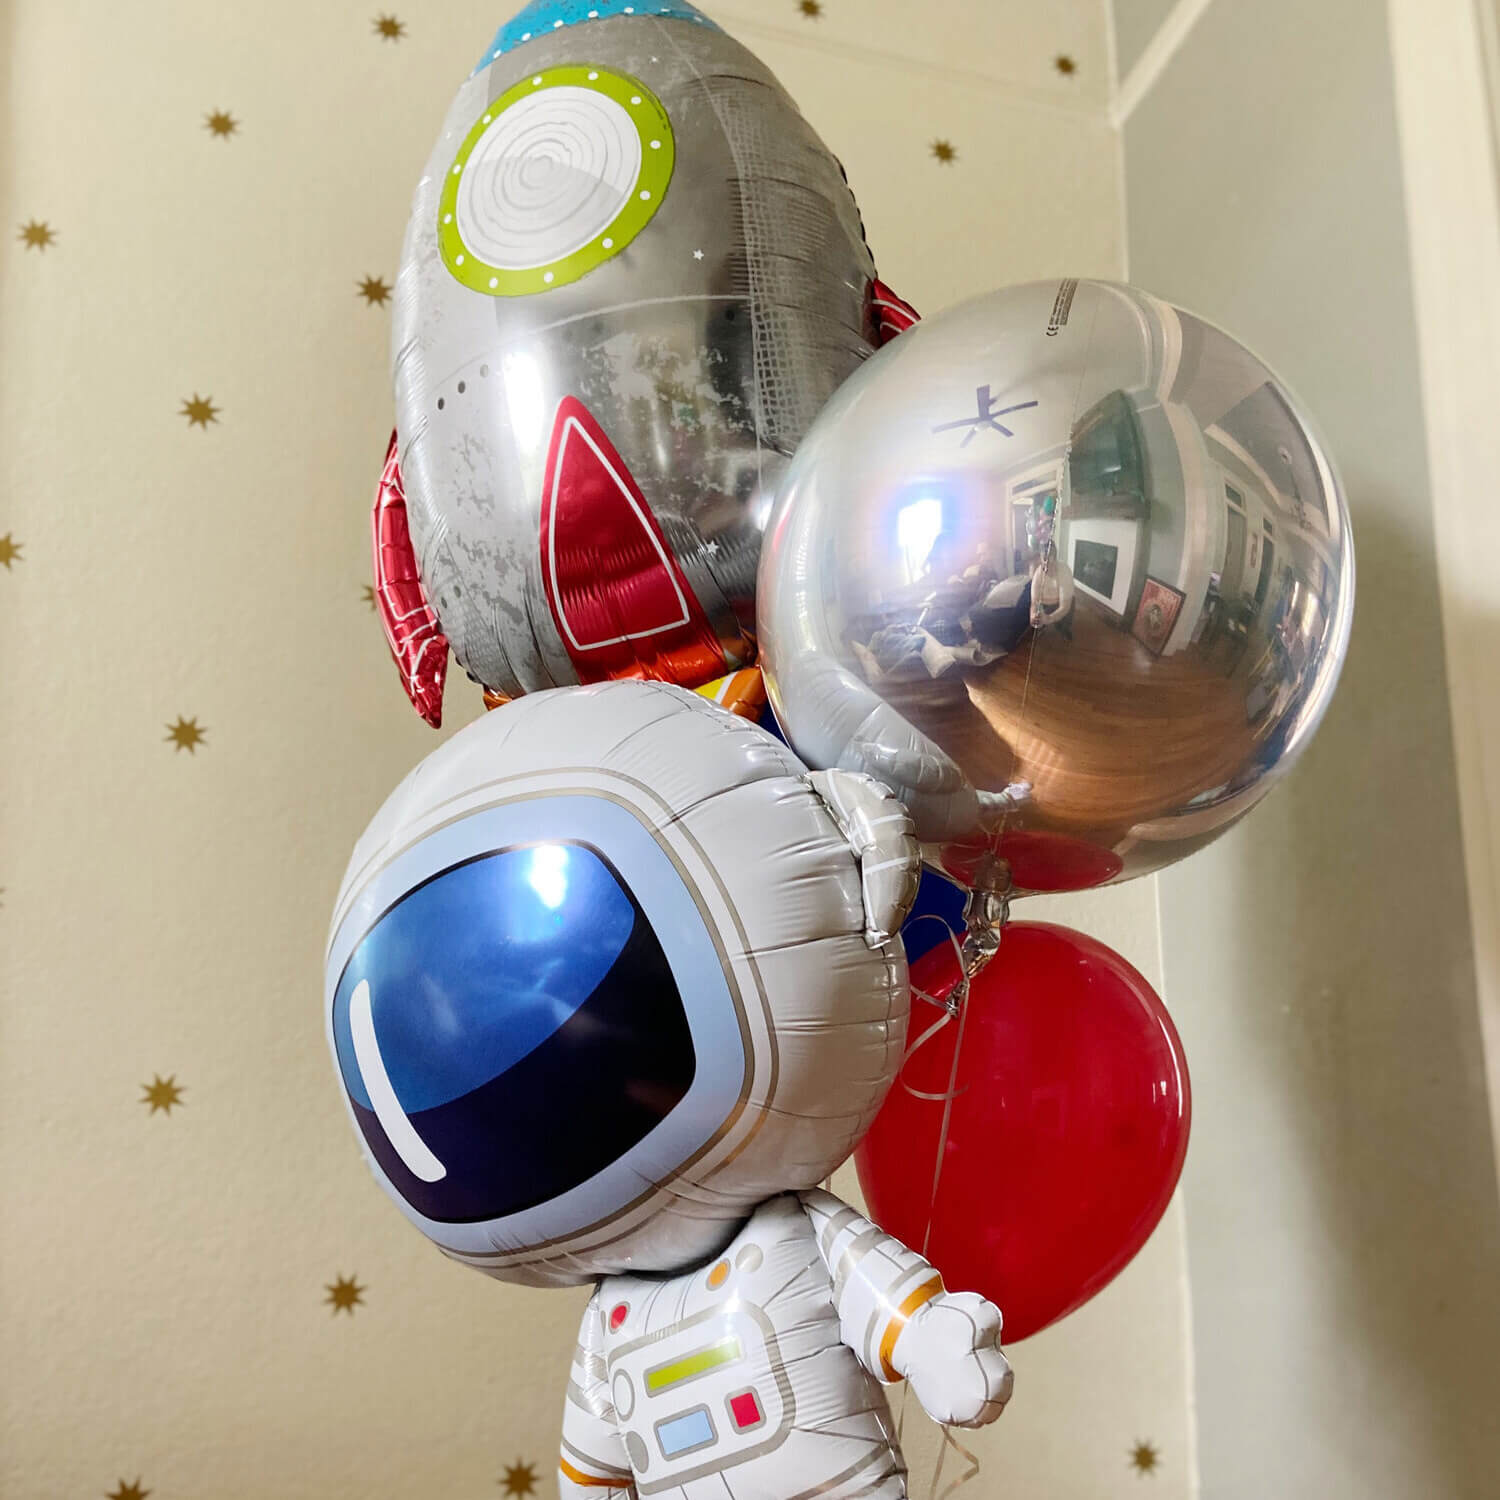 Just Peachy makes oversized helium bouquets like this one with astronaut, rocket ship, and silver orb balloons.